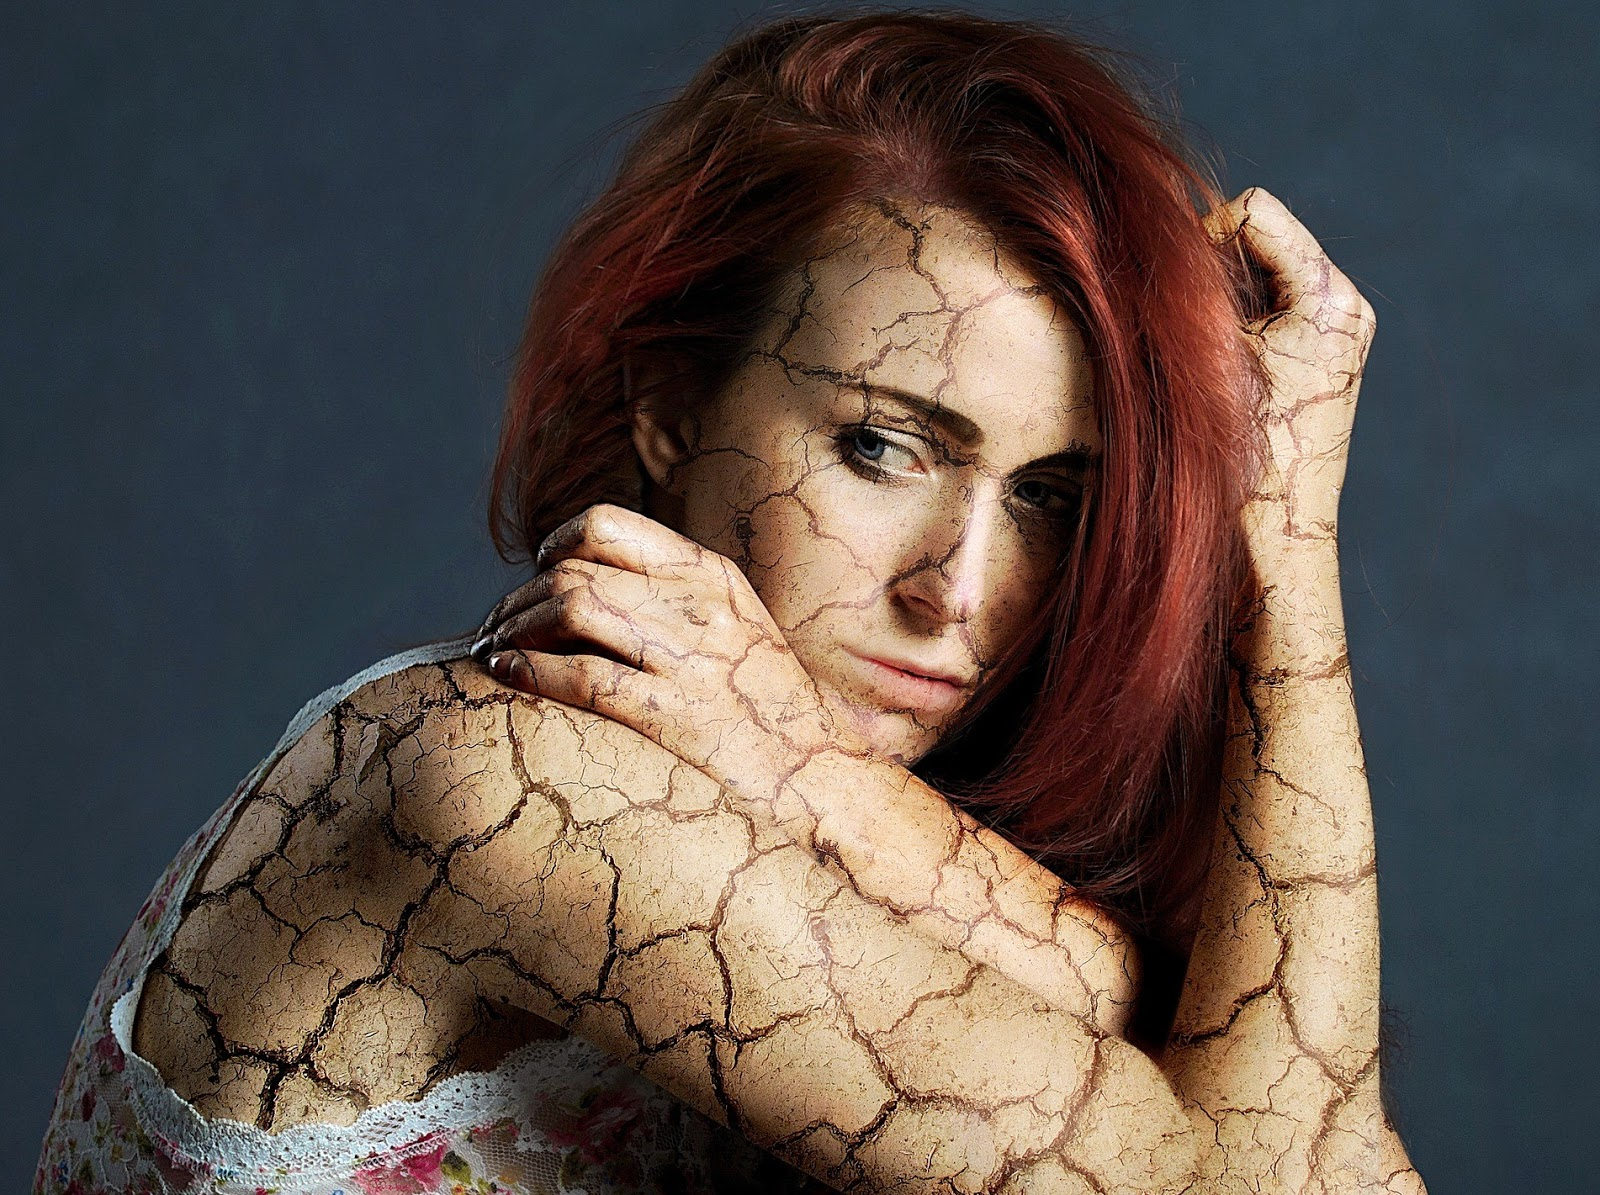 A woman with cracks on her skin